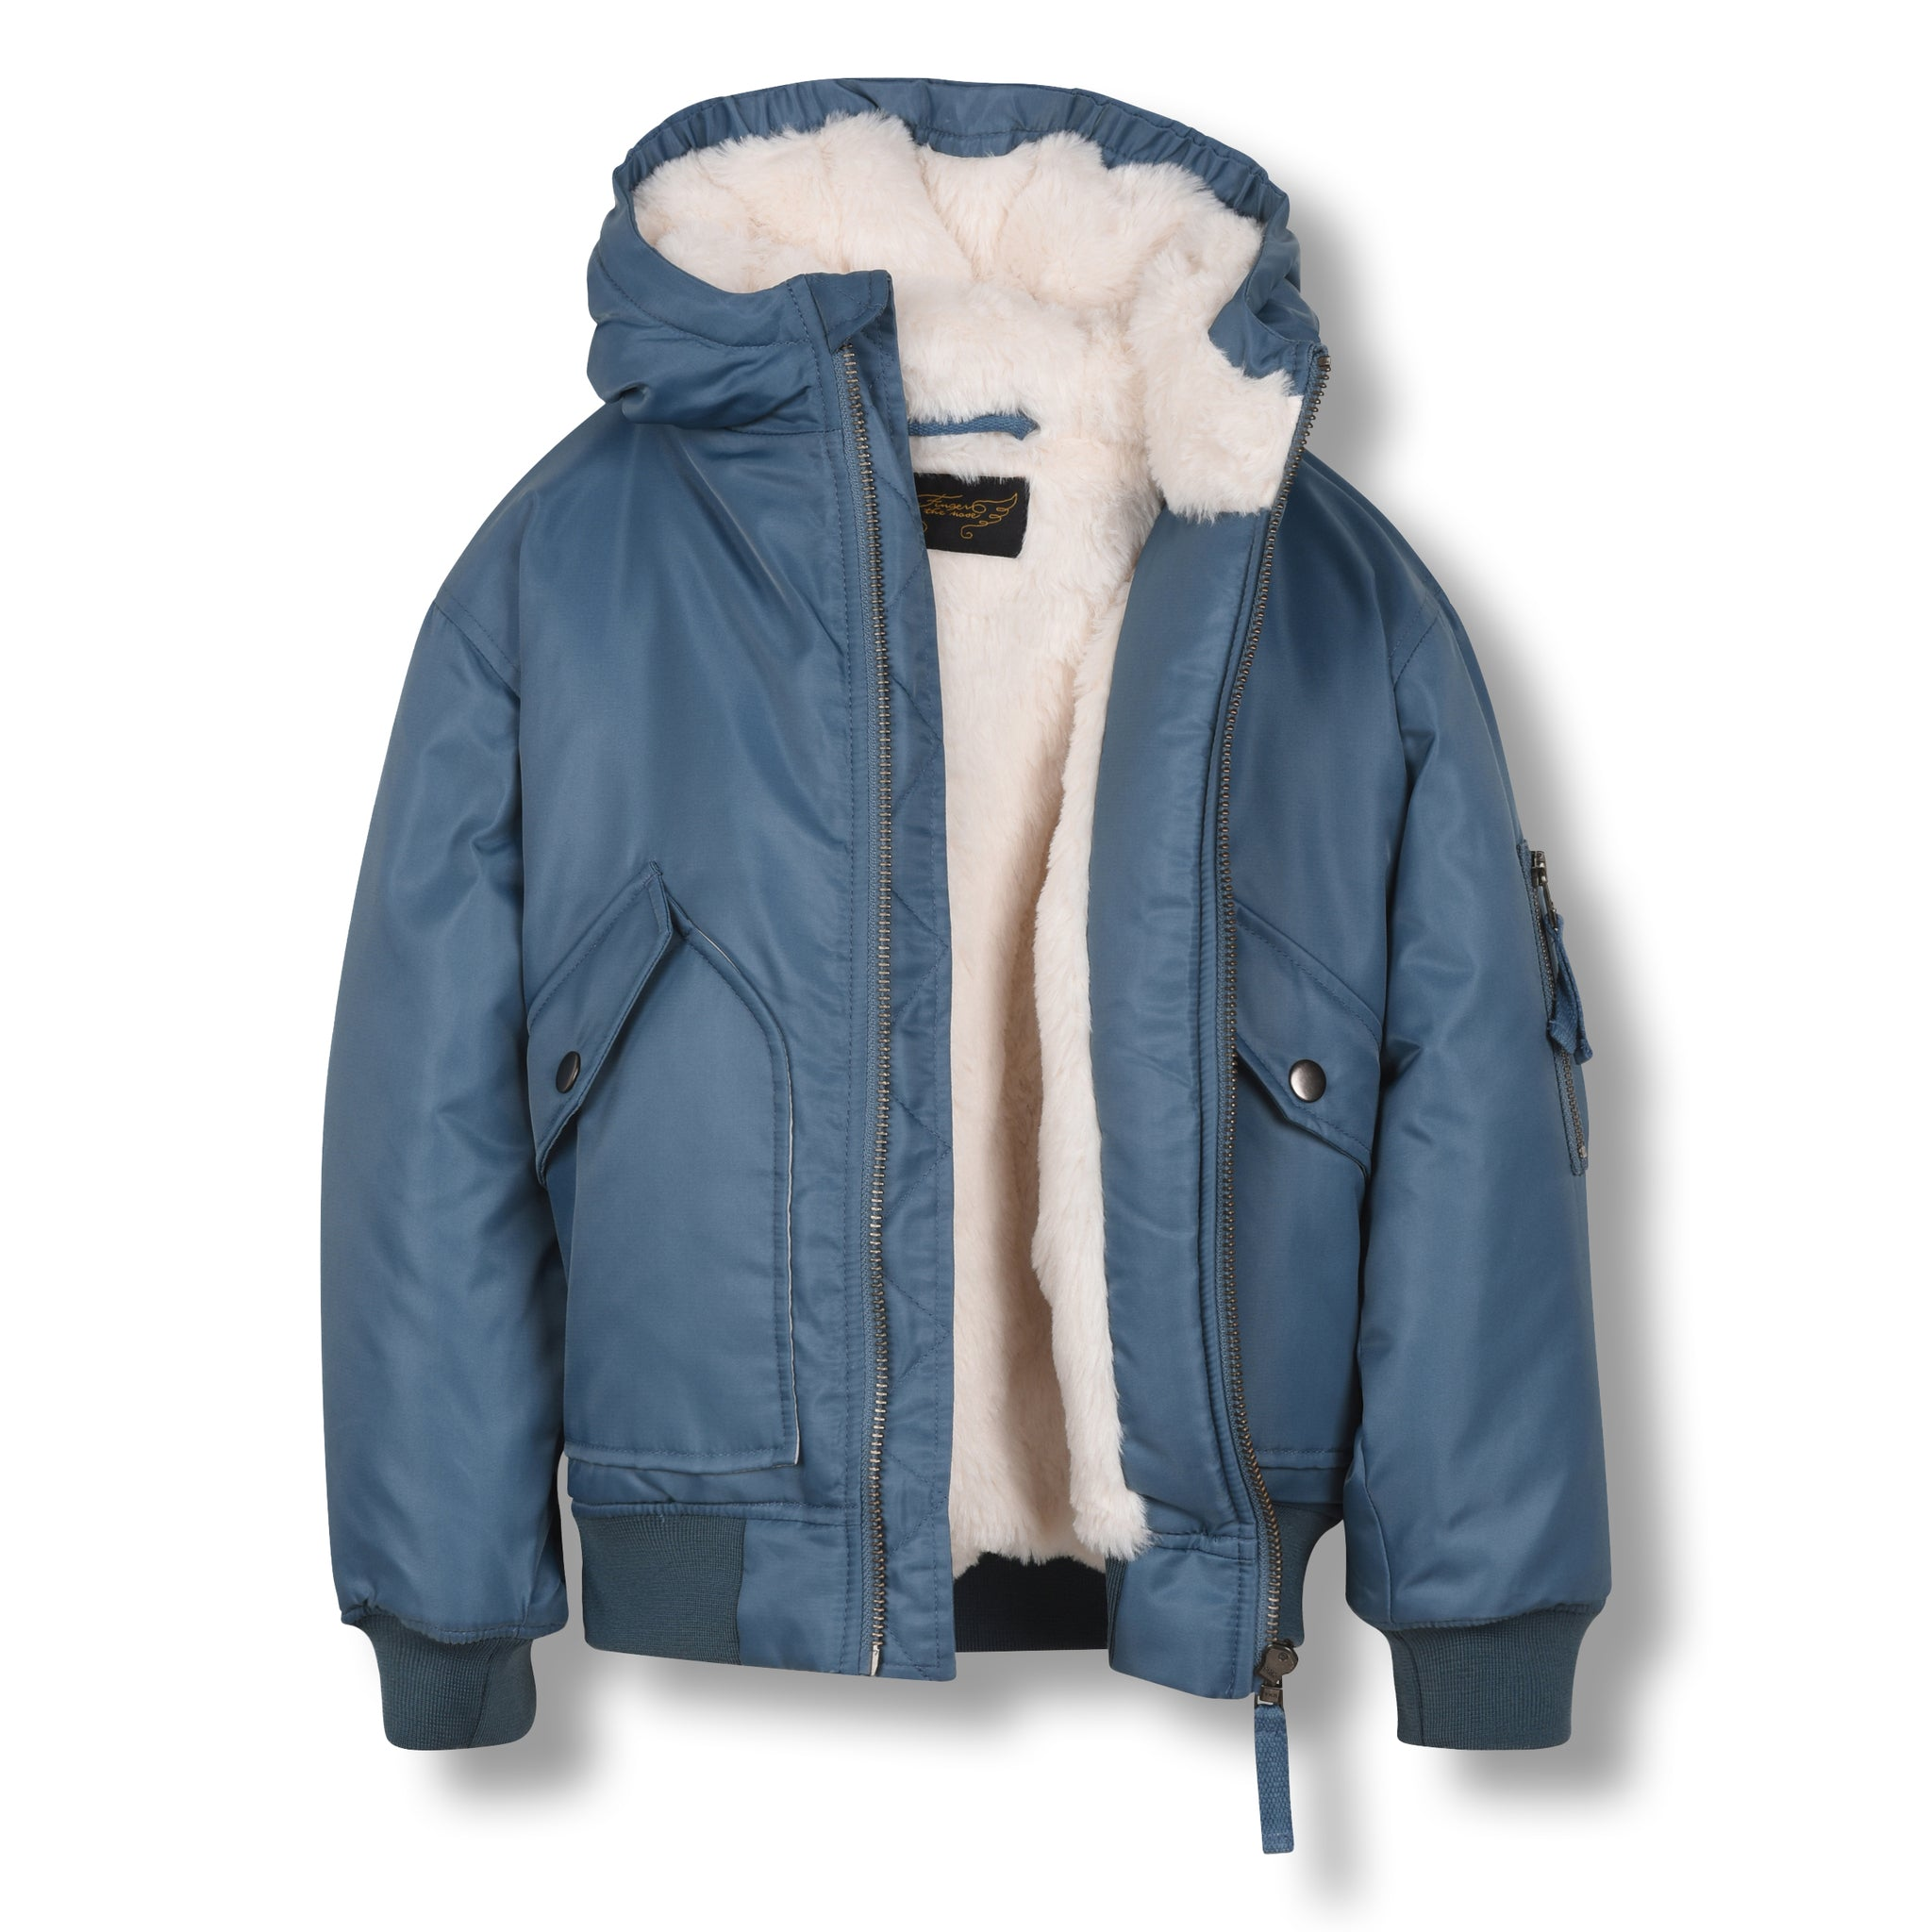 NEW BALTIMORE Stone Blue-Zipped Hooded Jacket 2